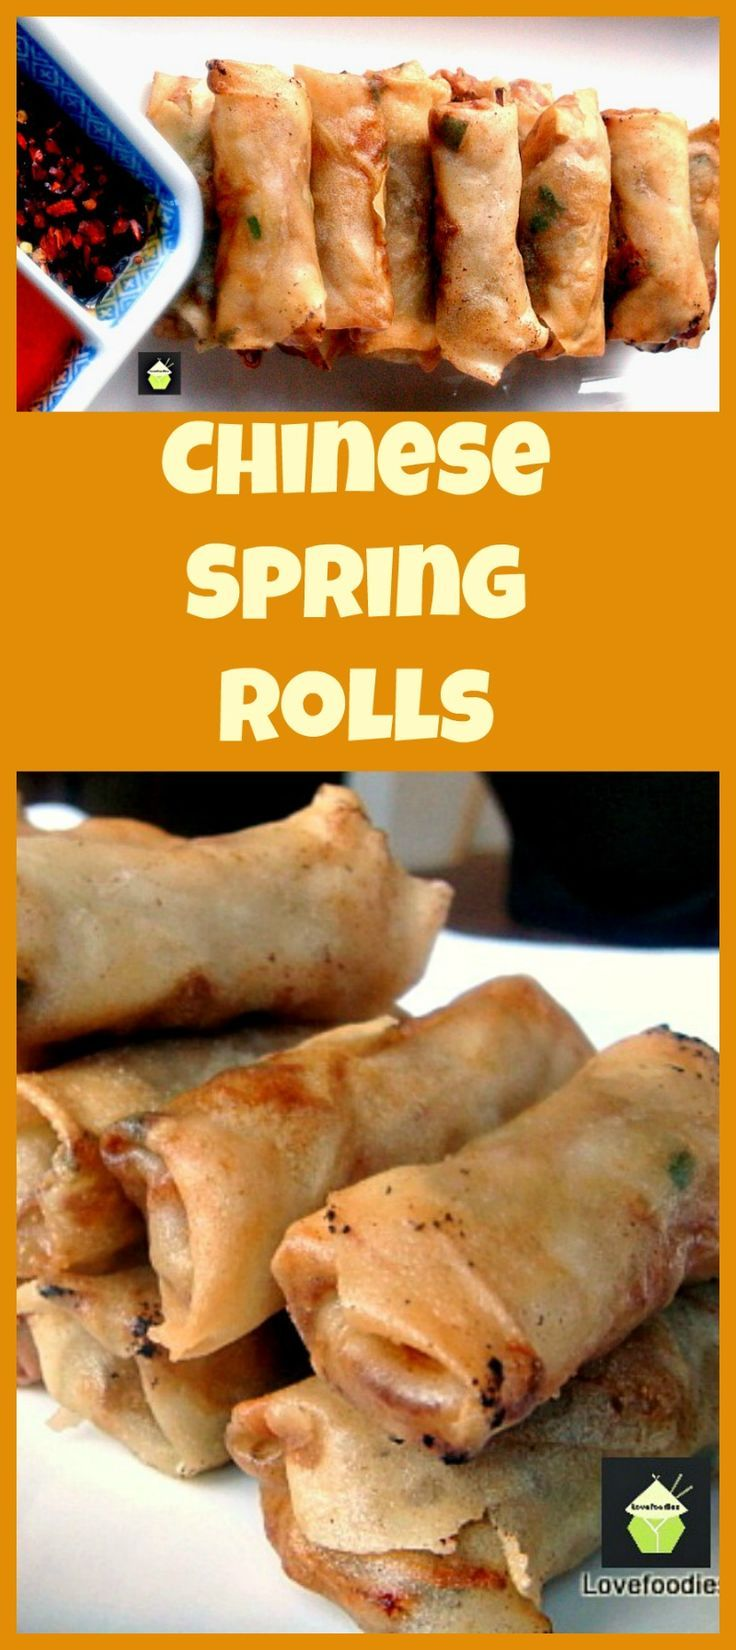 Chinese Spring Rolls - Great authentic taste and easy to follow instructions. | Lovefoodies.com Chinese New Year